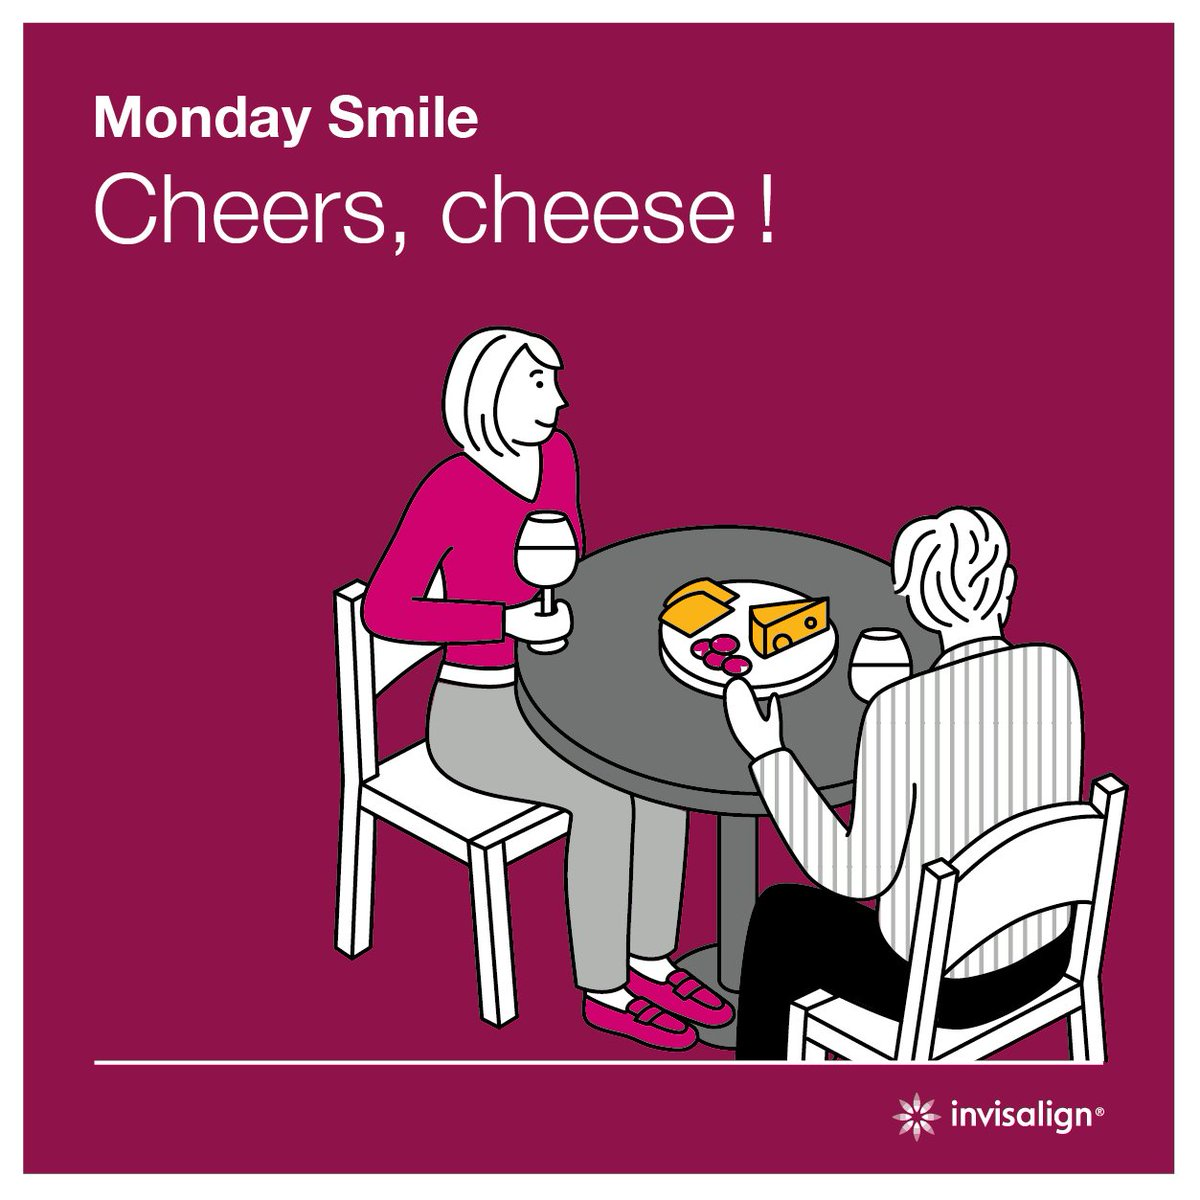 Cheers-cheese ! :) #mondaysmile #diner #frenchcheese #smile #sourire #aligners https://t.co/AiBCxSo1RM